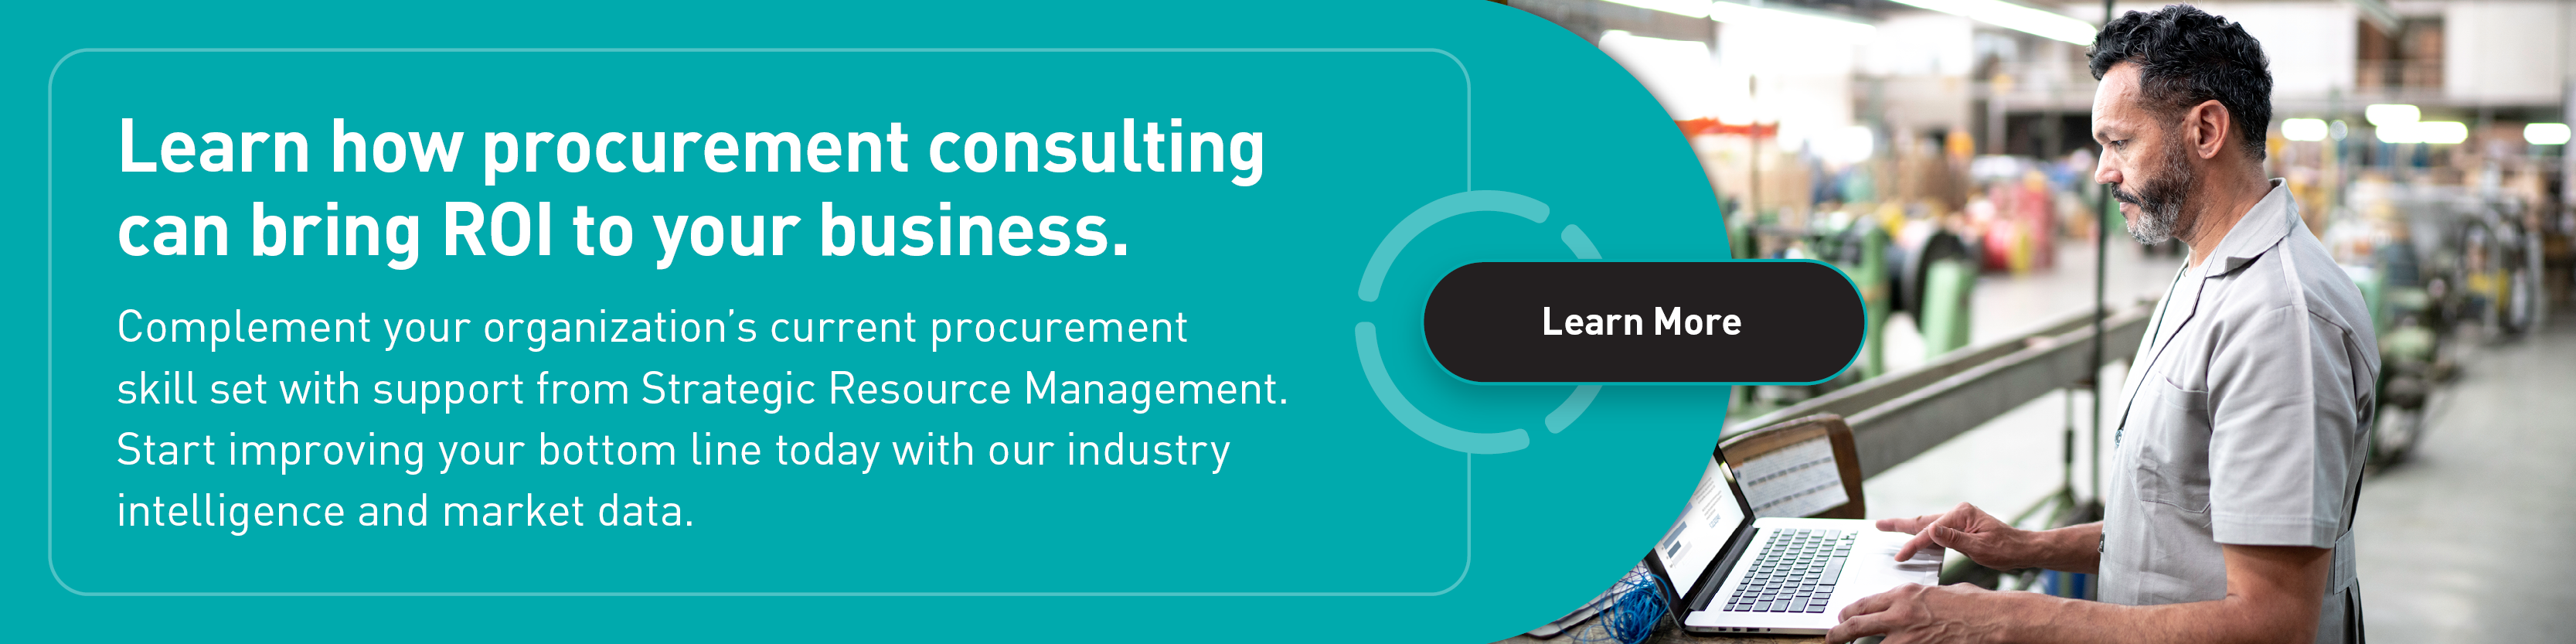 Learn how procurement consulting can bring ROI to your business.